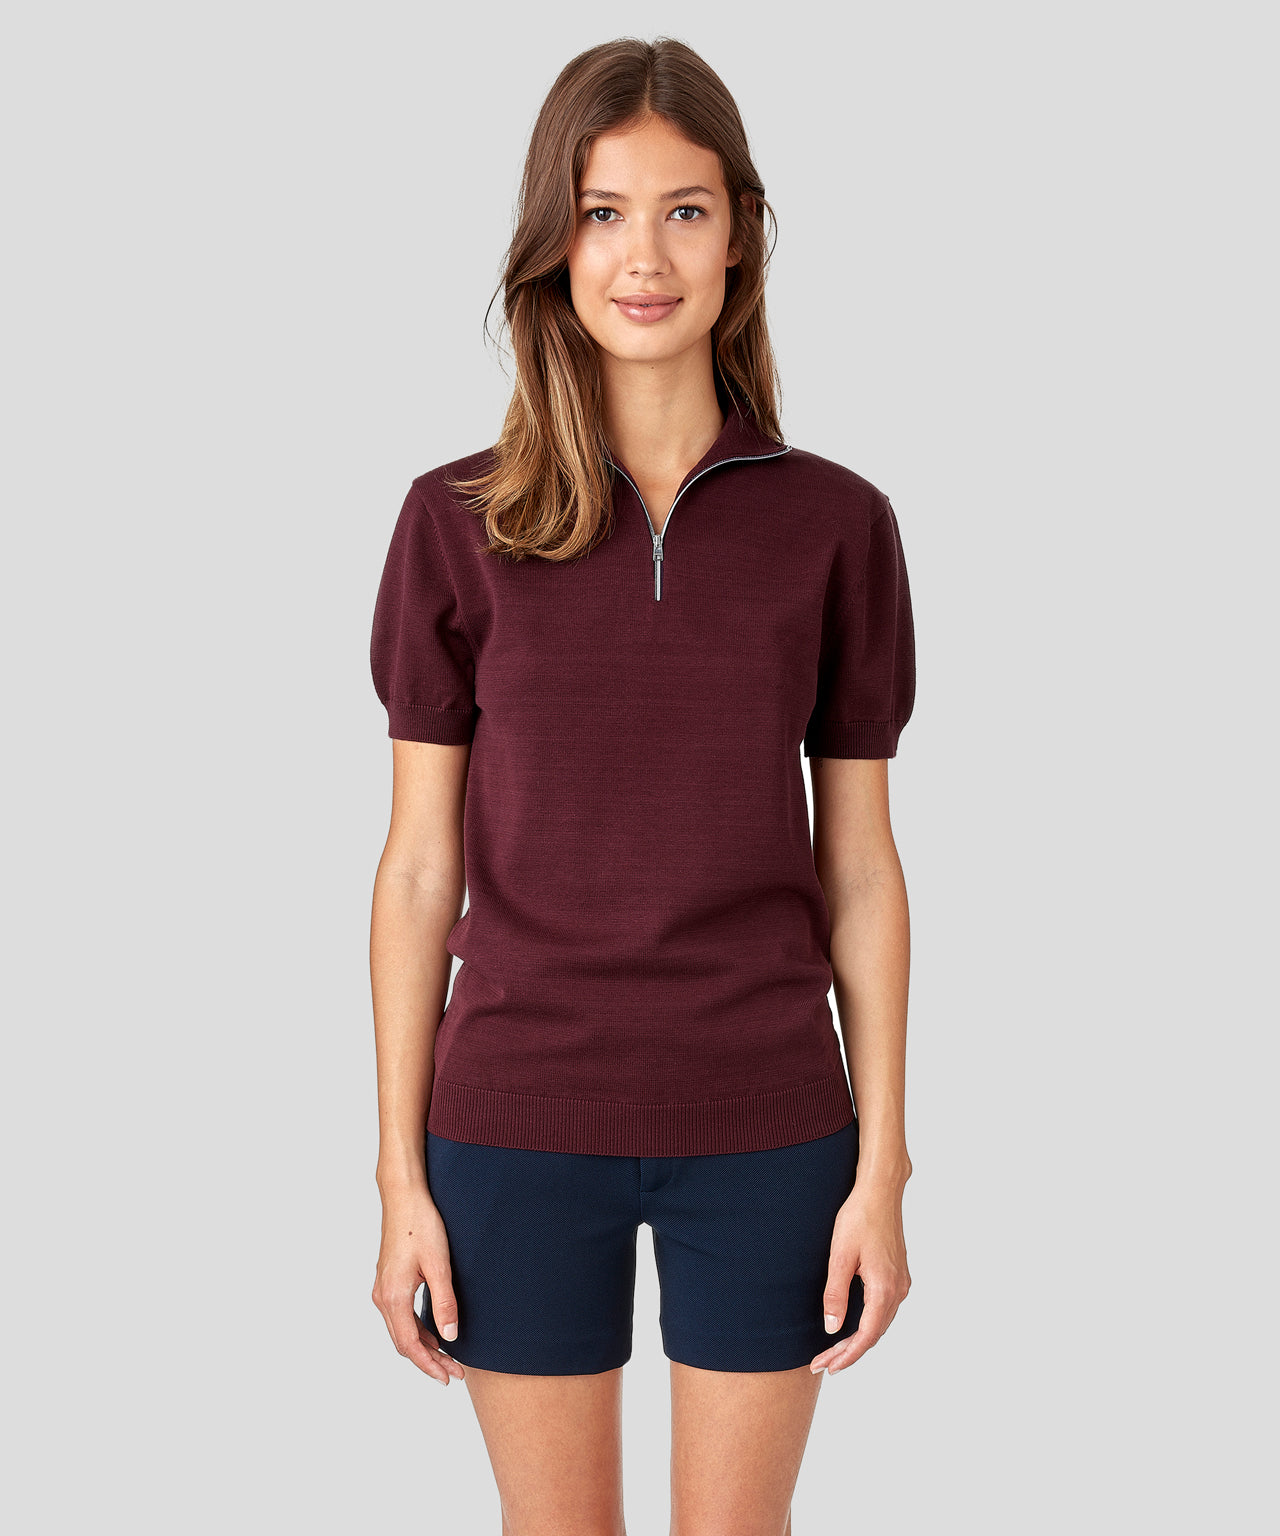 RD Polo His For Her - burgundy red